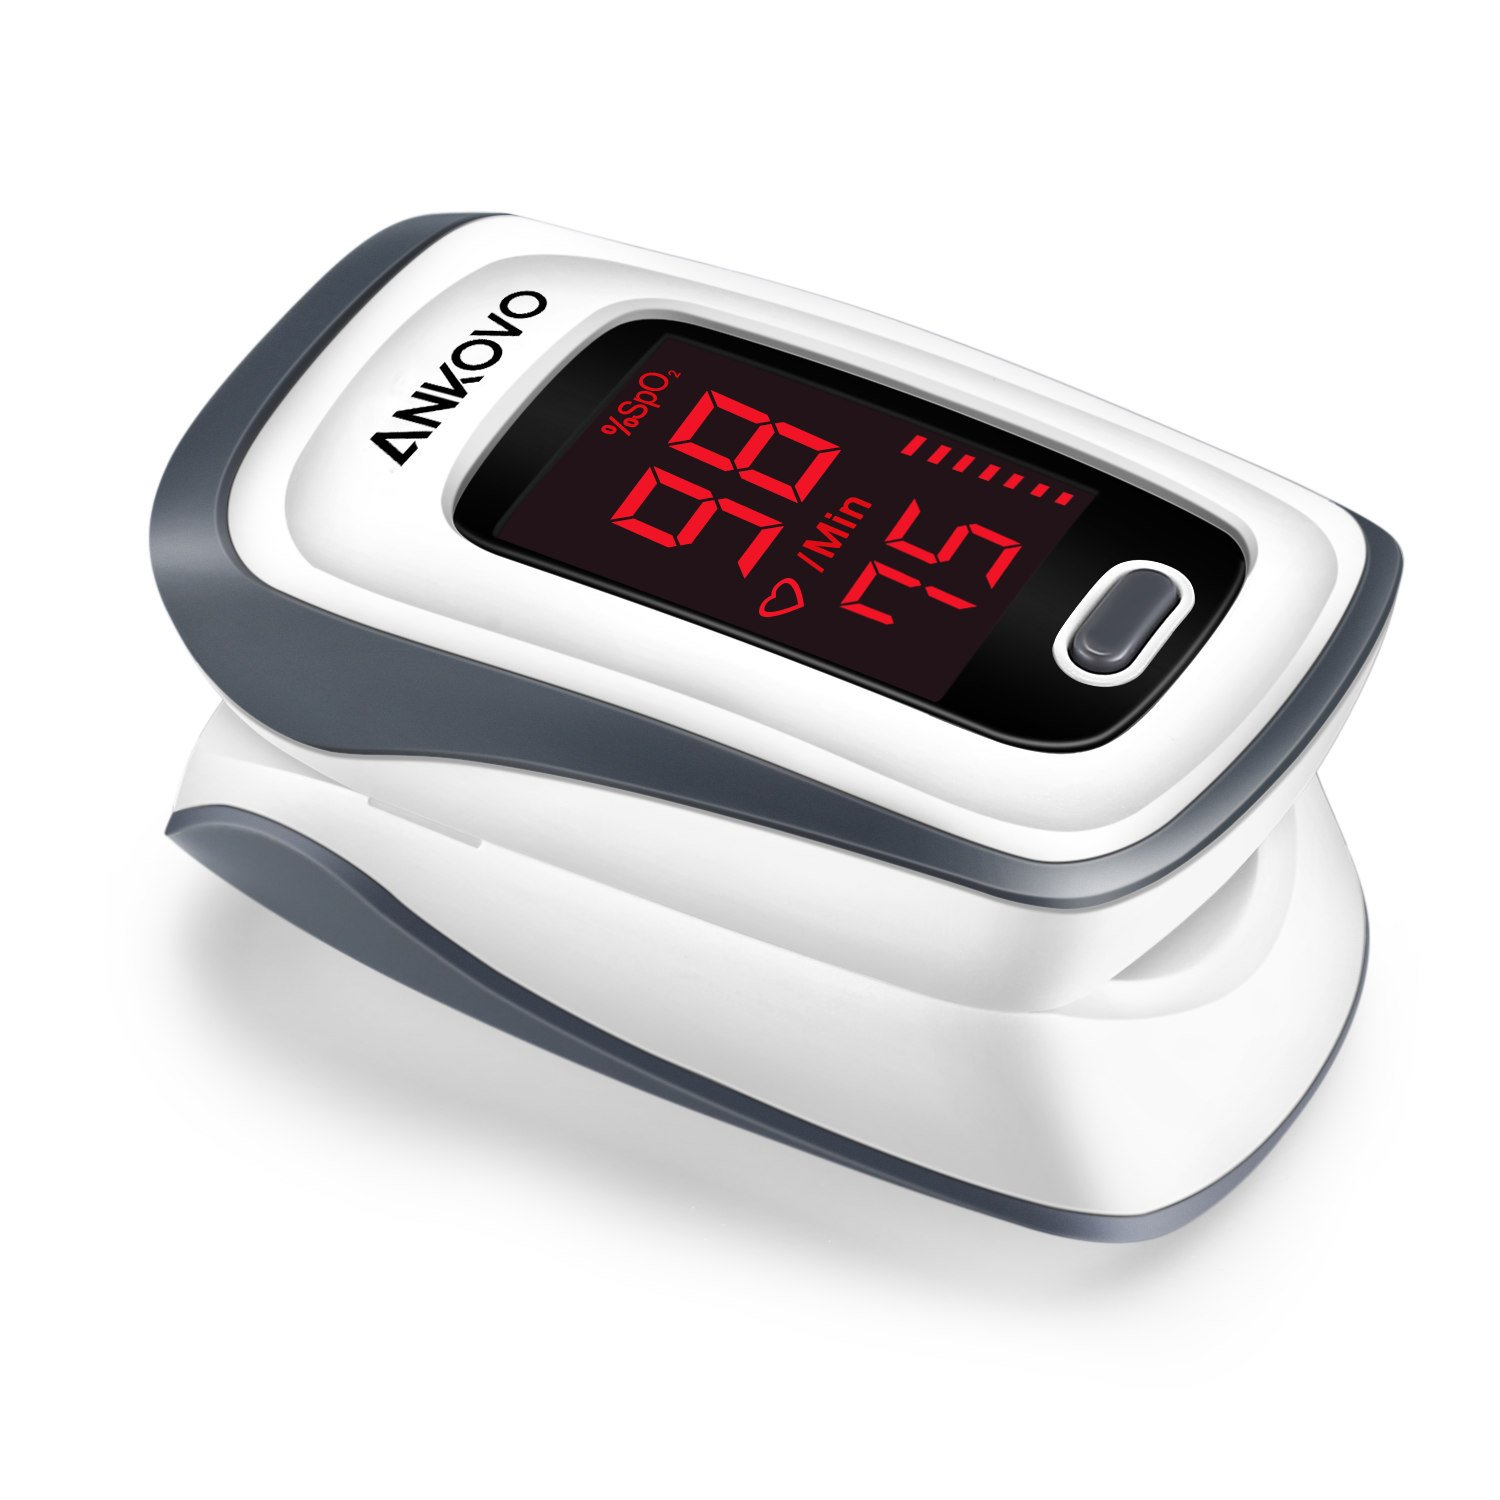 ANKOVO Pulse Oximeter Fingertip Blood Oxygen Saturation Monitor Pulse Rate and SpO2 Level with Lanyard and Batteries